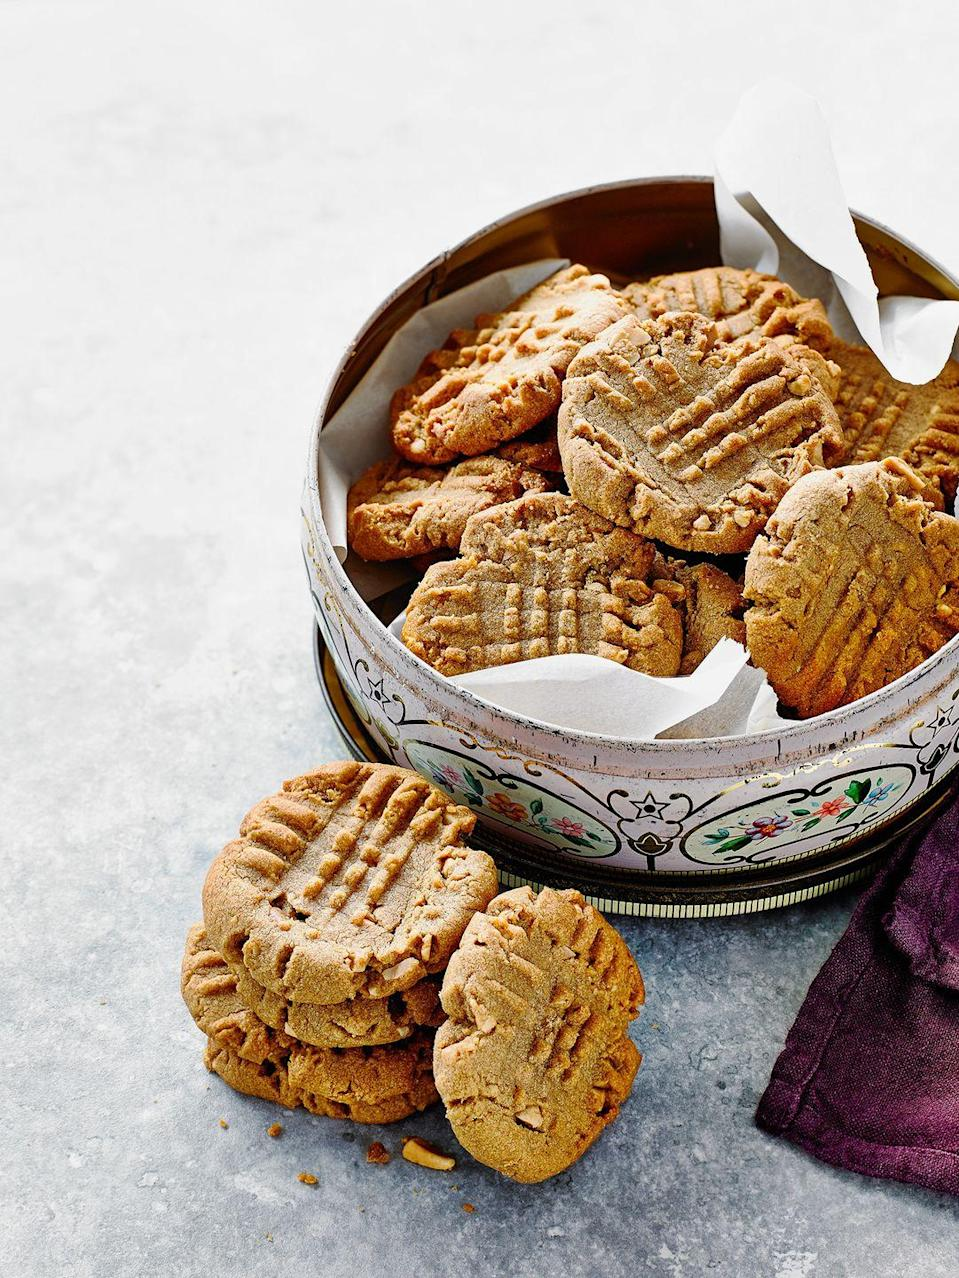 """<p>These quick peanut butter cookies are the perfect treat when you need something sweet in no time at all. They're also gluten and dairy-free!</p><p><strong>Recipe: <a href=""""https://www.goodhousekeeping.com/uk/food/recipes/a26942826/peanut-butter-cookies/"""" rel=""""nofollow noopener"""" target=""""_blank"""" data-ylk=""""slk:Peanut butter cookies"""" class=""""link rapid-noclick-resp"""">Peanut butter cookies</a></strong></p>"""